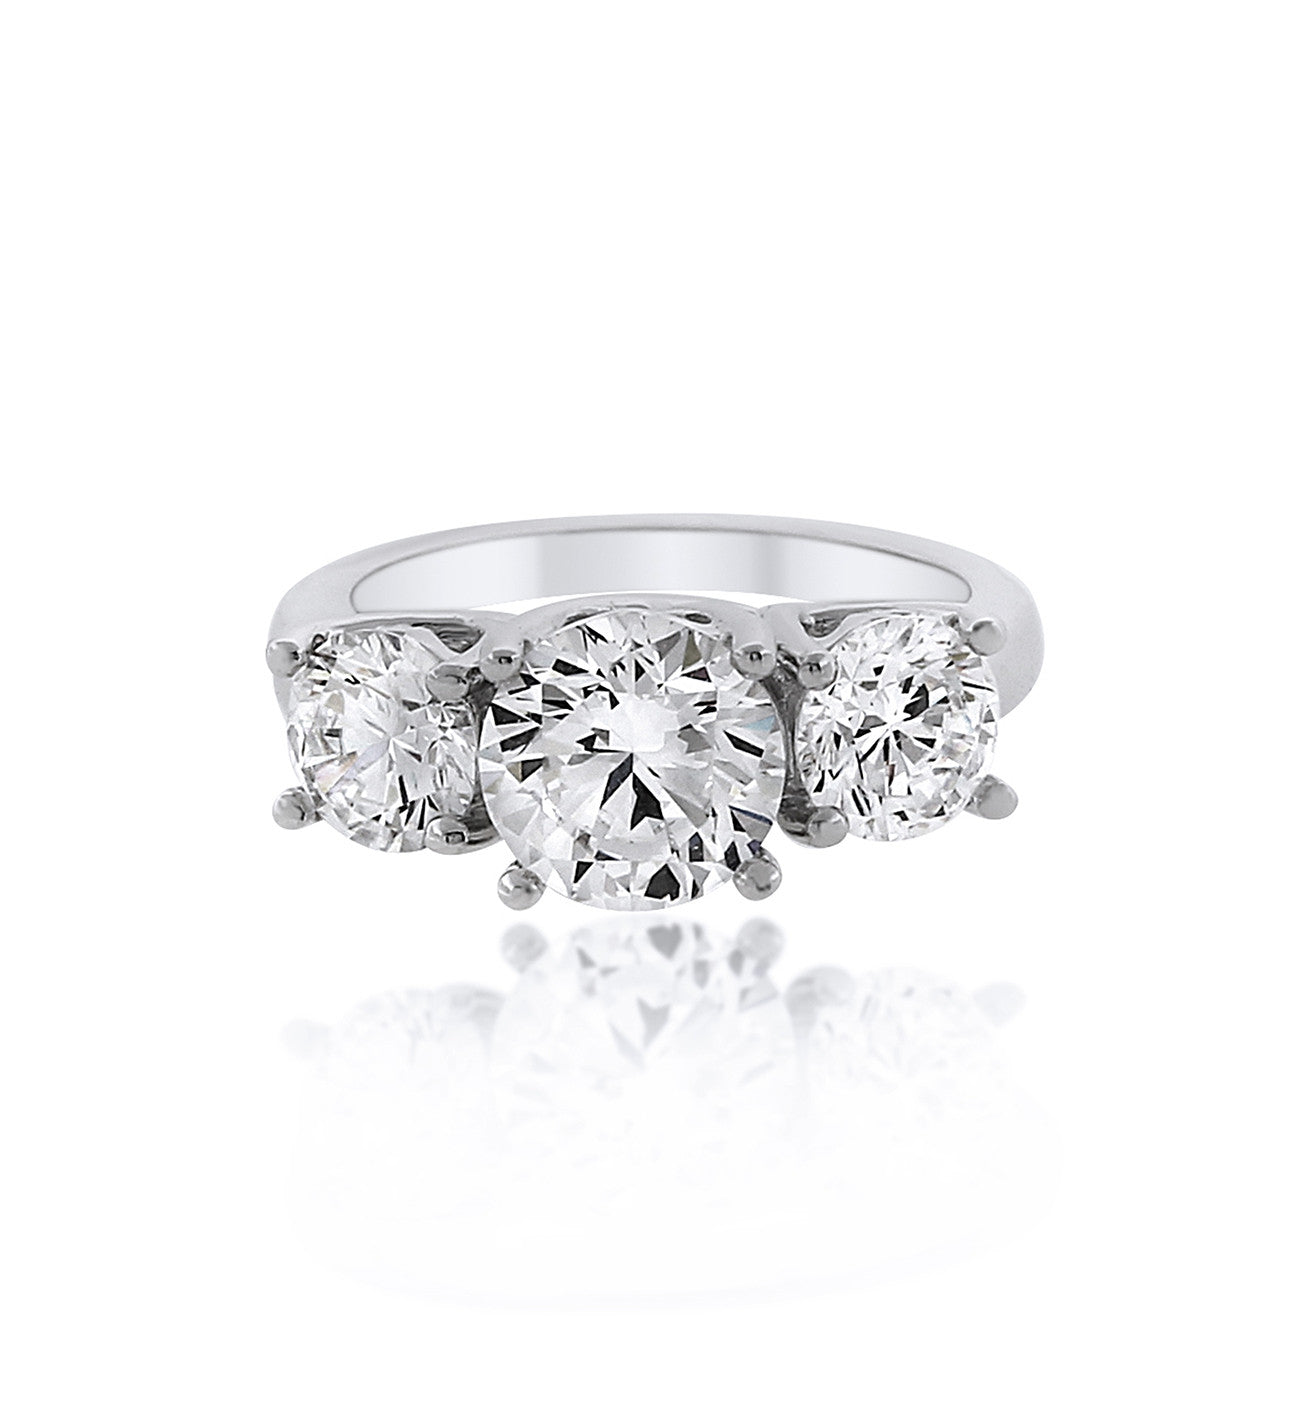 Silver Cubic Zirconia Rings by Bobby Schandra